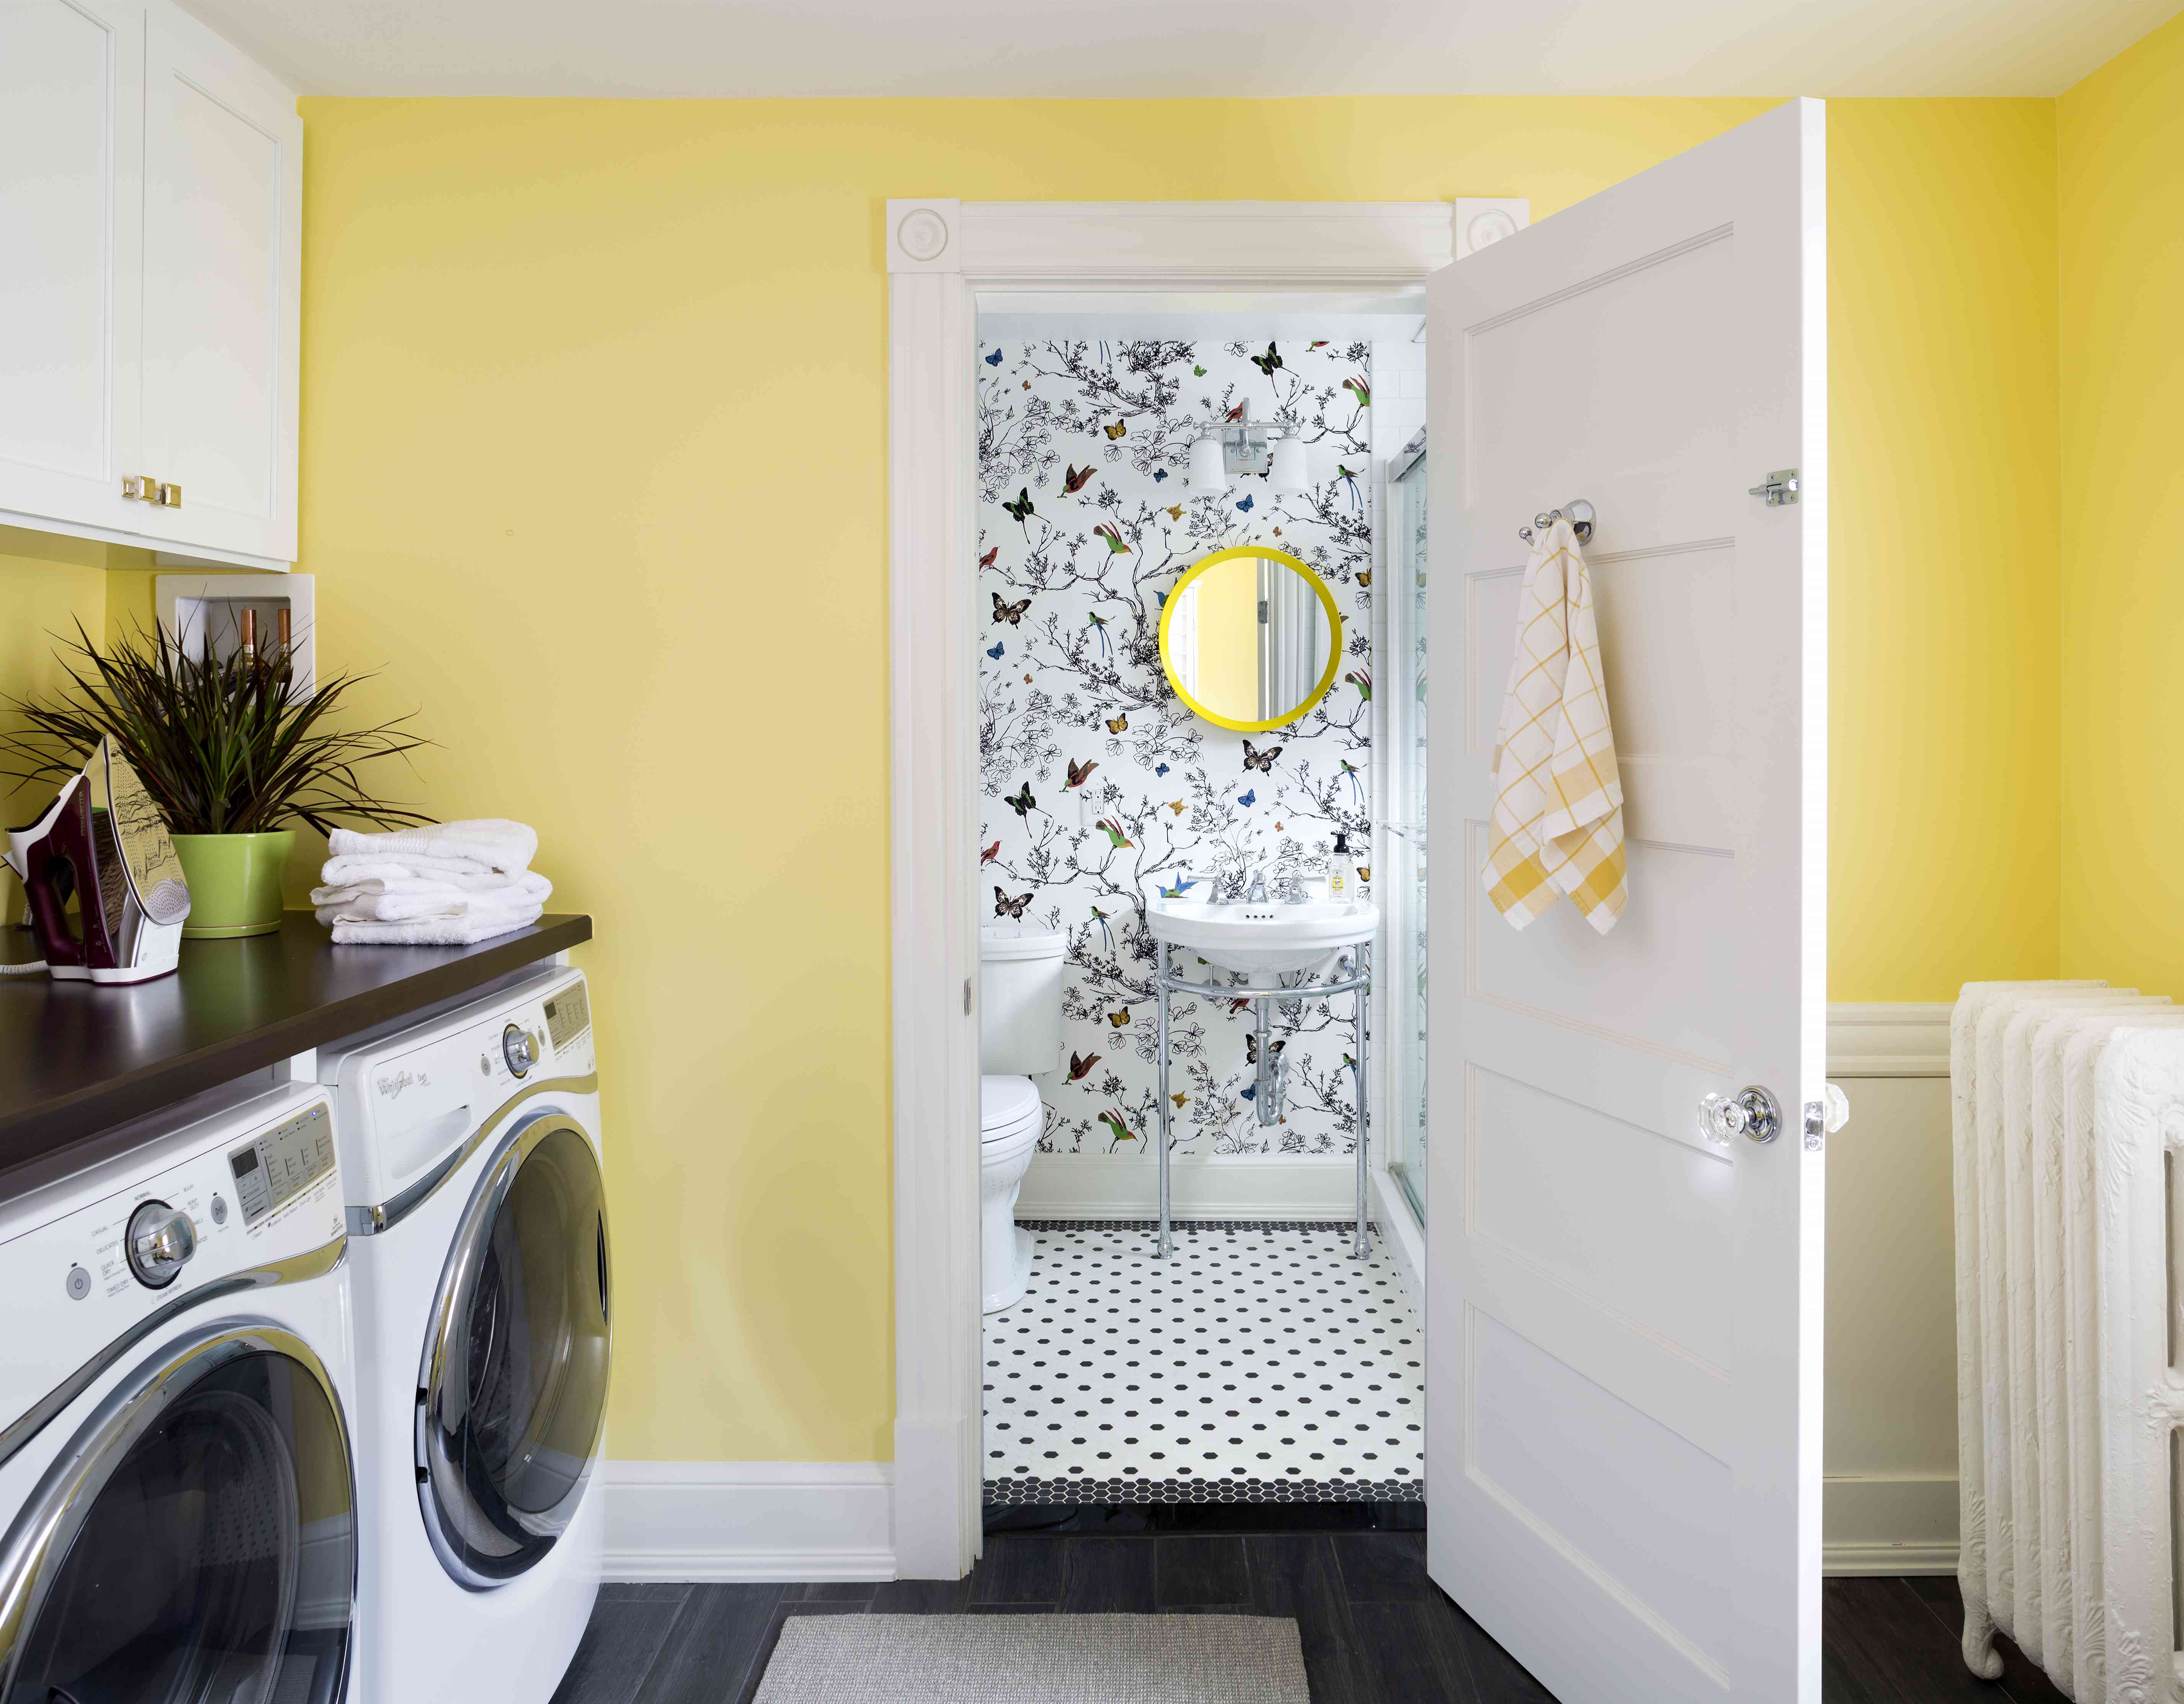 Laundry room with door open to a bathroom with wallpaper